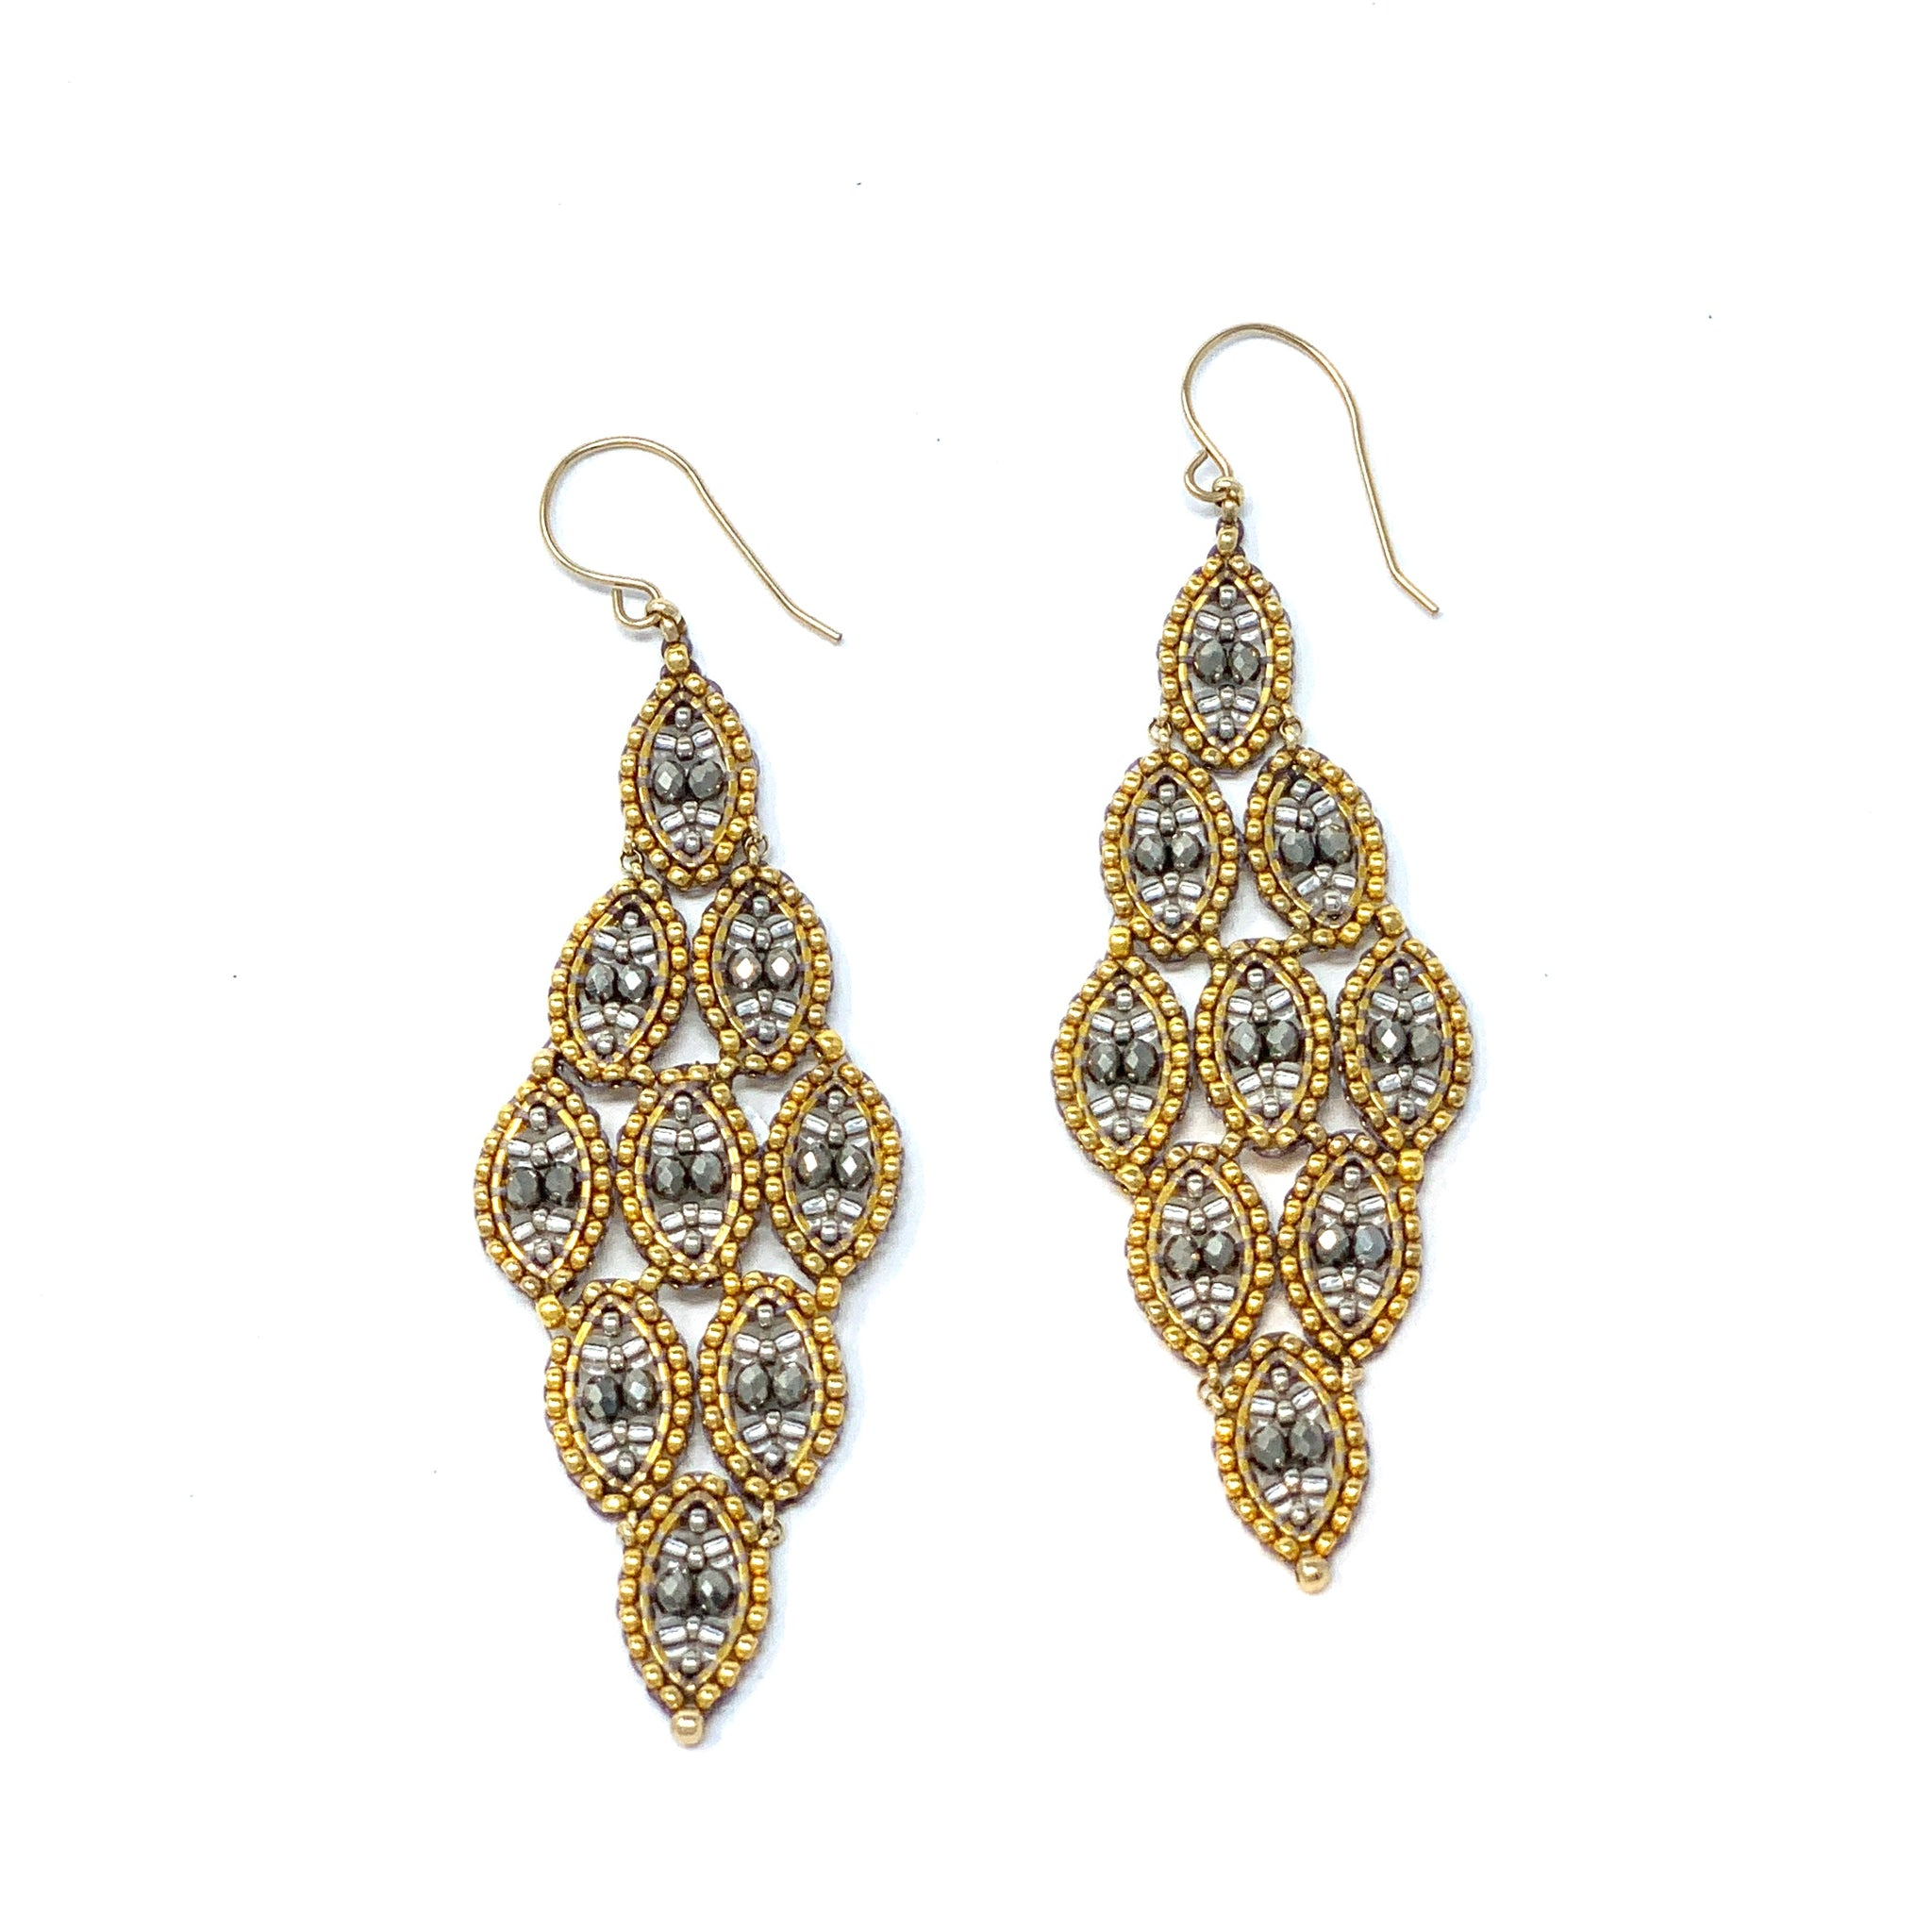 Long Diamond Shaped Silver and Gold Drops - Big Bag